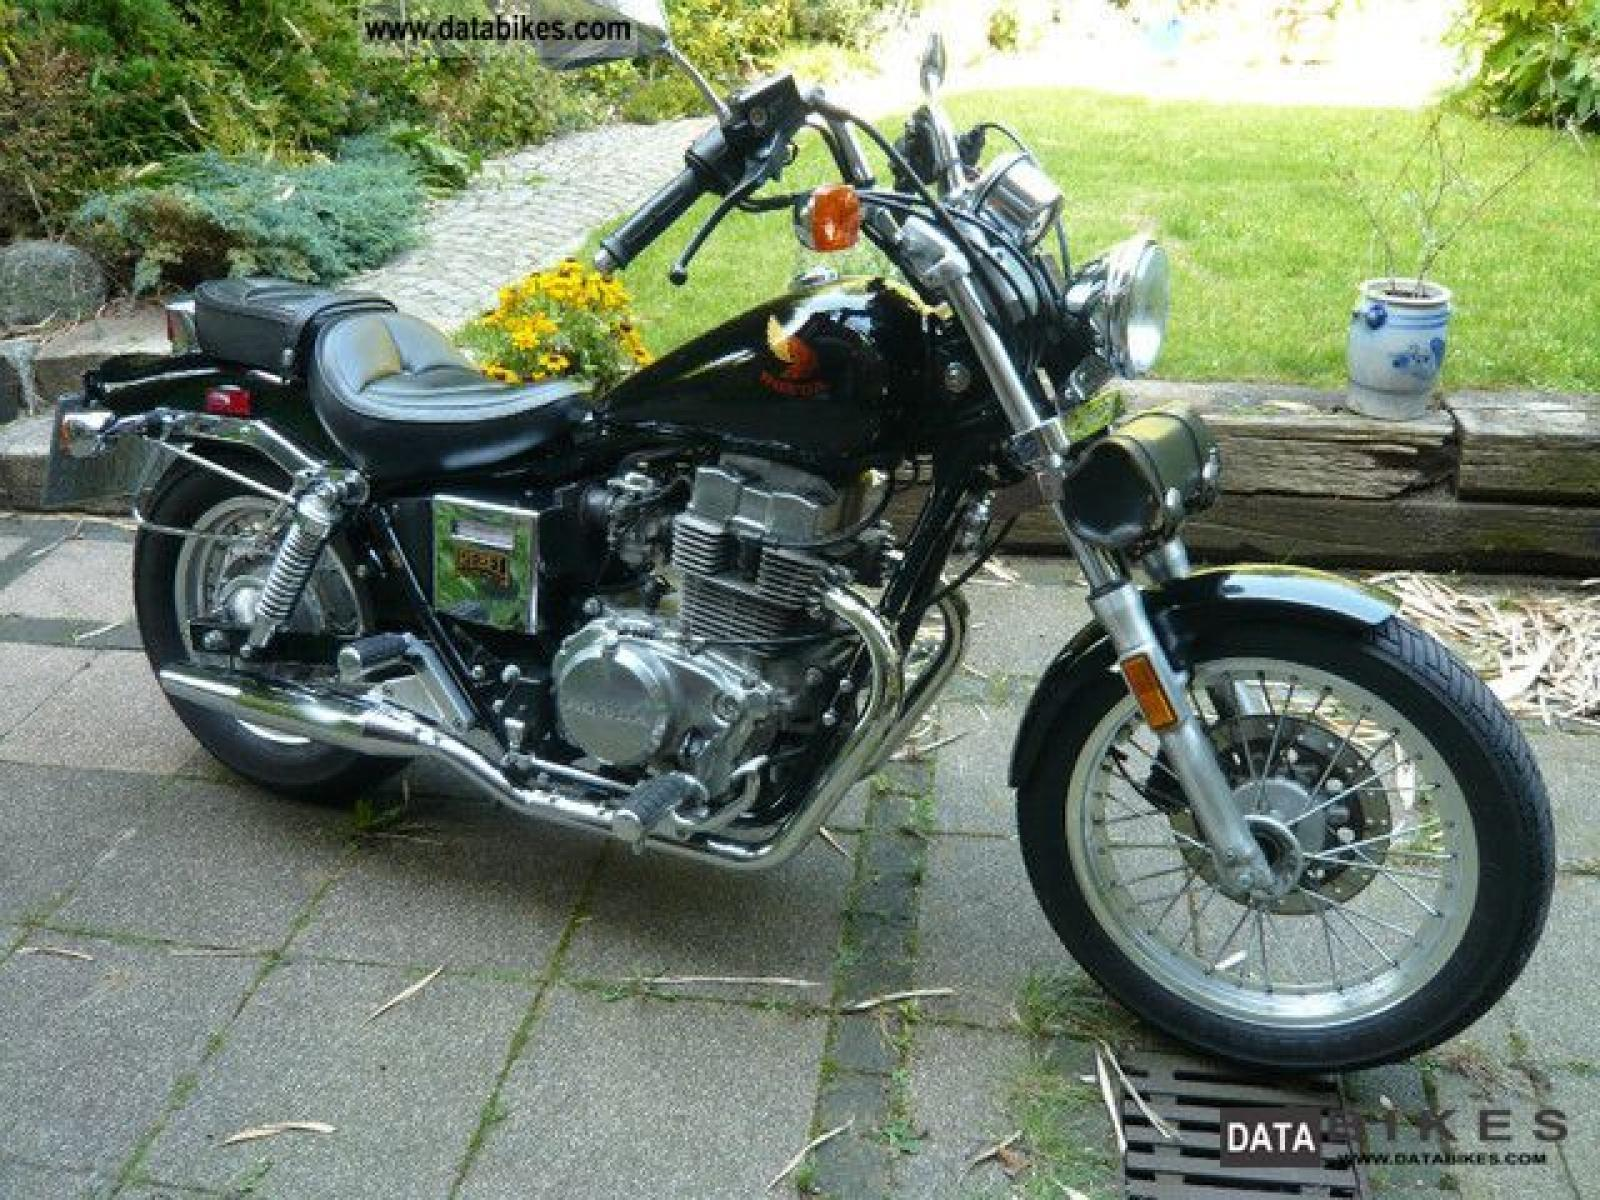 ... Honda CMX 450 Rebel 1986 #8 800 1024 1280 1600 origin ...